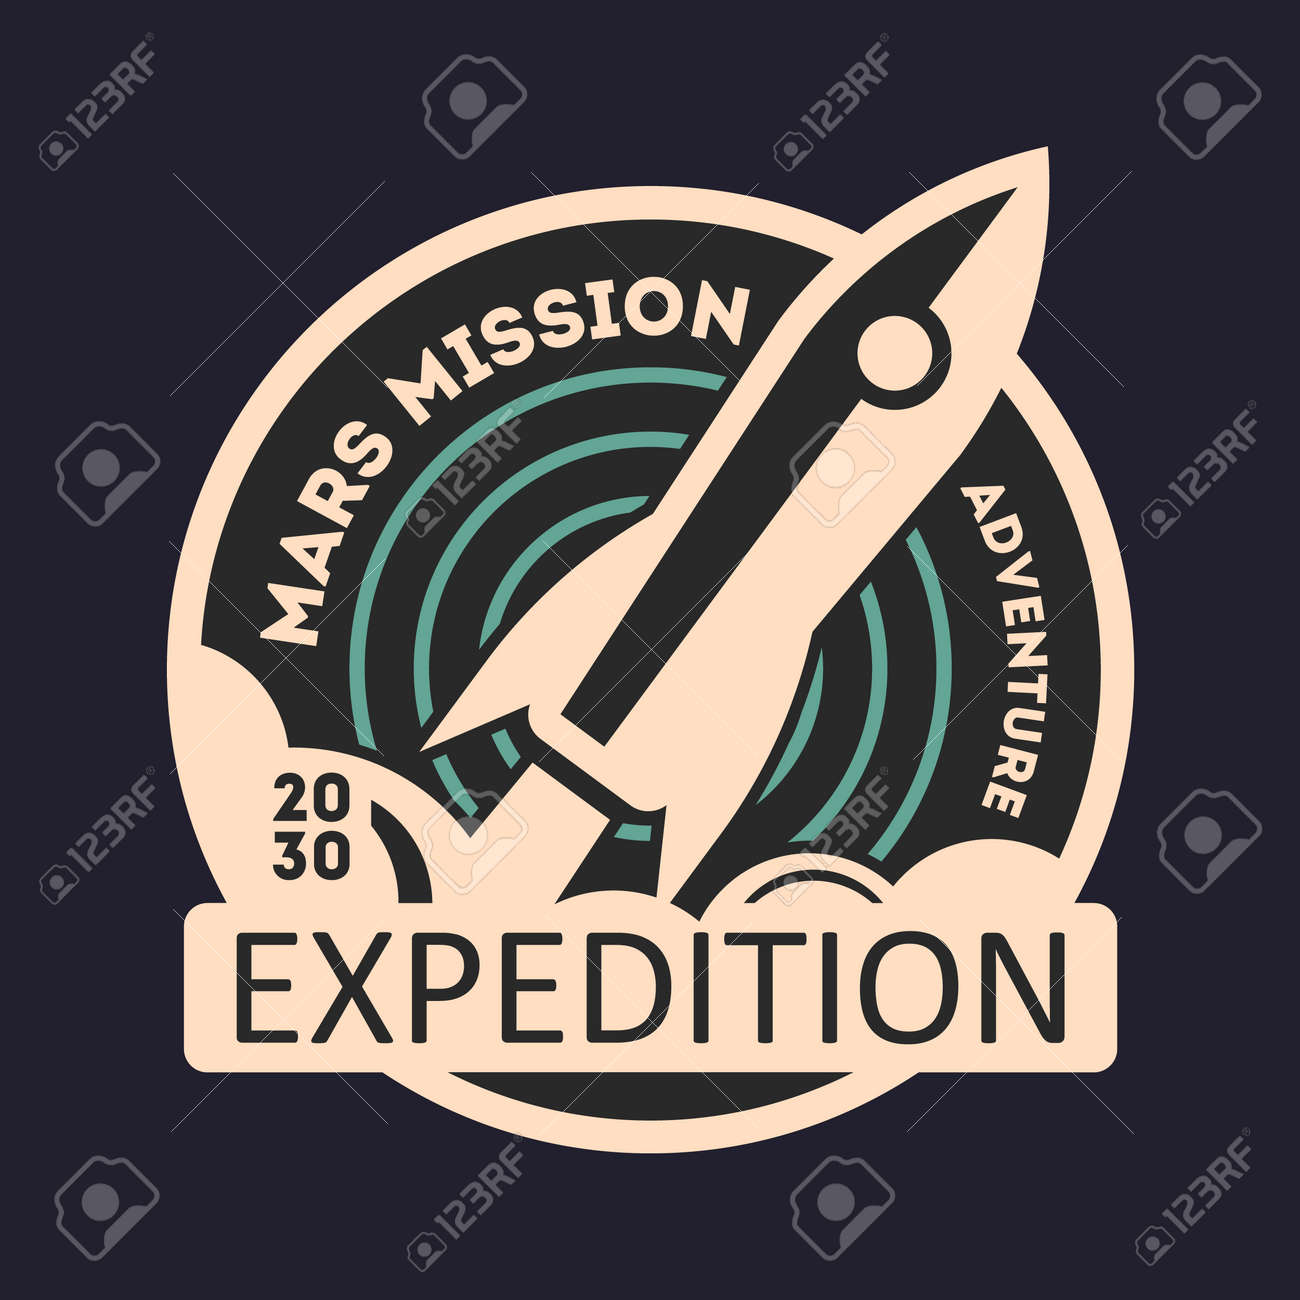 Mars mission vintage isolated label scientific odyssey symbol mars mission vintage isolated label scientific odyssey symbol modern spacecraft flying planet colonization biocorpaavc Choice Image